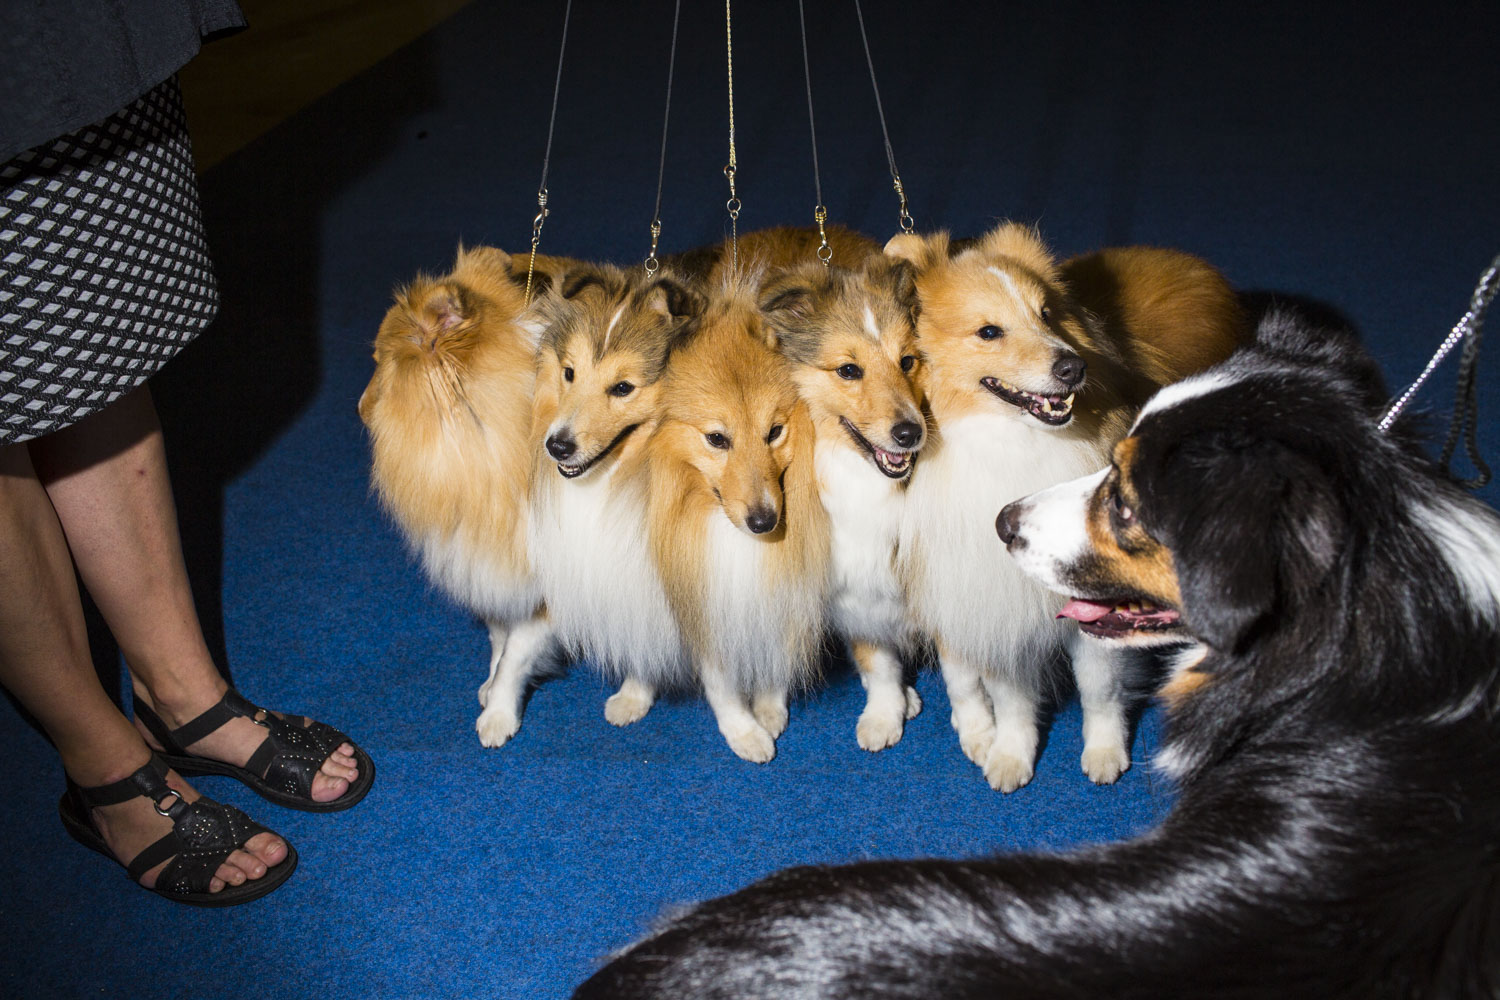 Anne Reider's five Shetland Sheep dogs from Sweden make the acquaintance of another canine before competing in the Best Breeders' Group, which they won on the final day of the 2014 World Dog Show on Sunday, August 10th, 2014, in Helsinki, Finland.